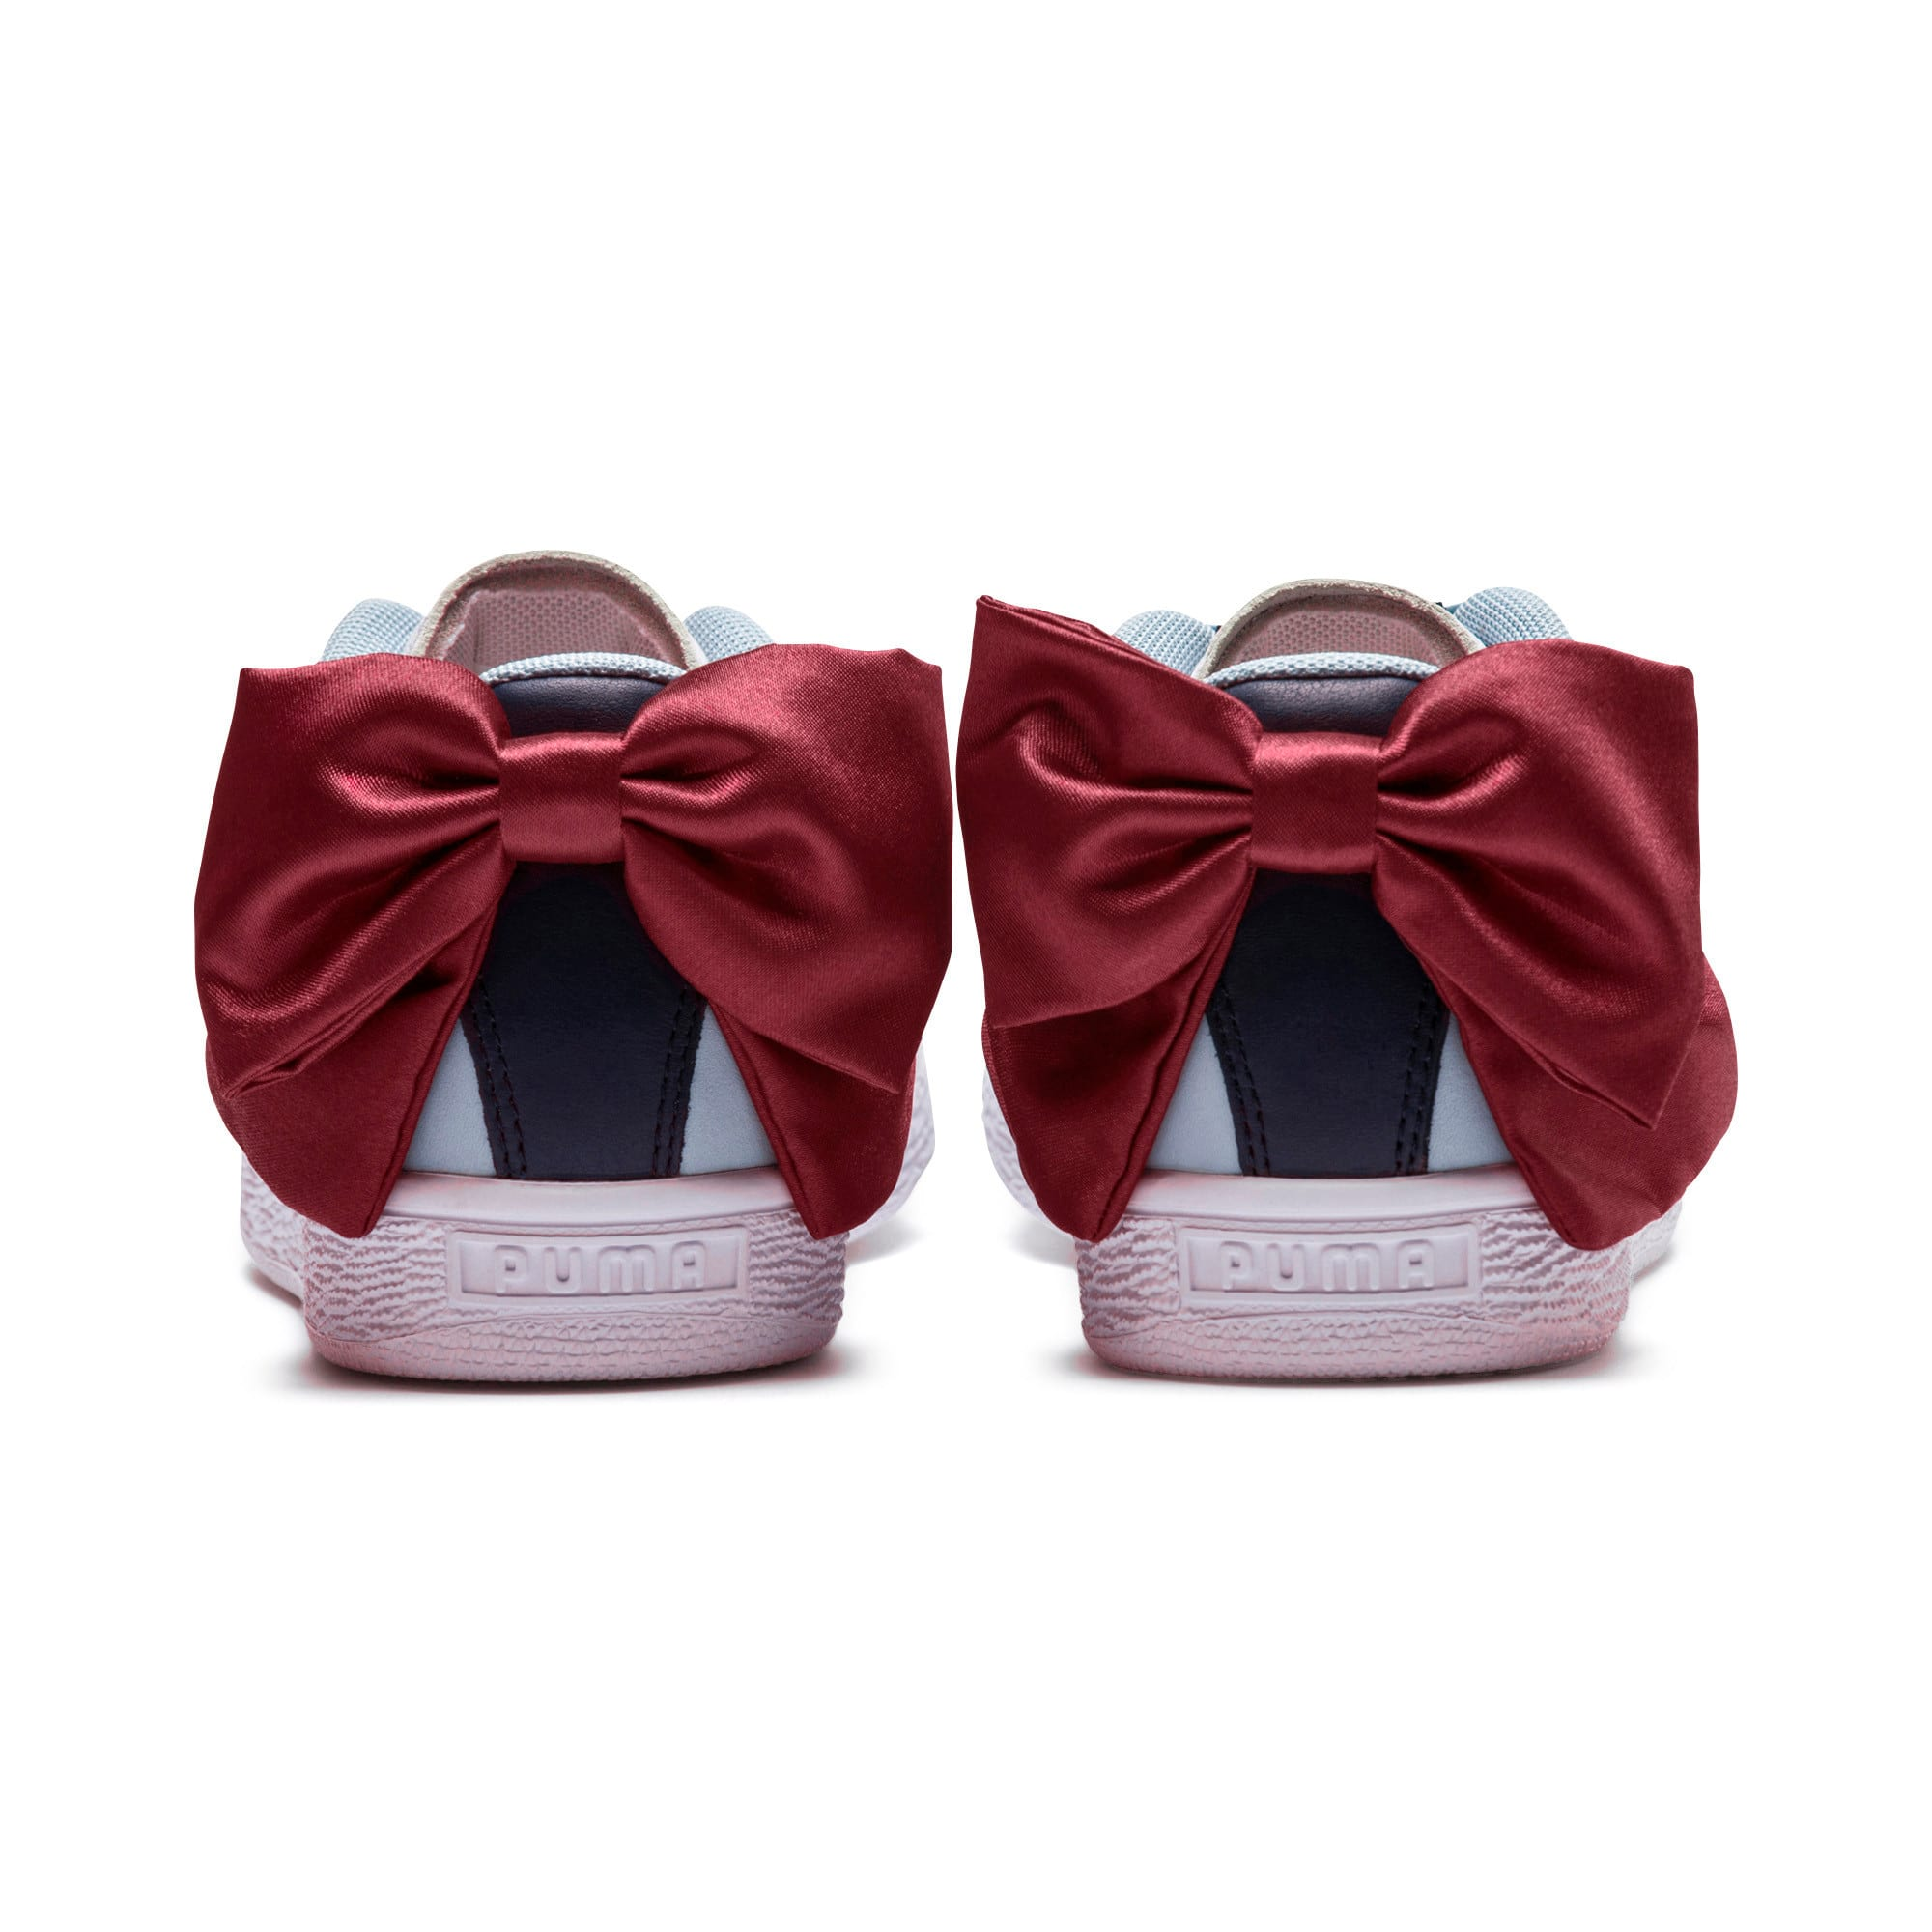 Basket Bow New School Women's Sneakers